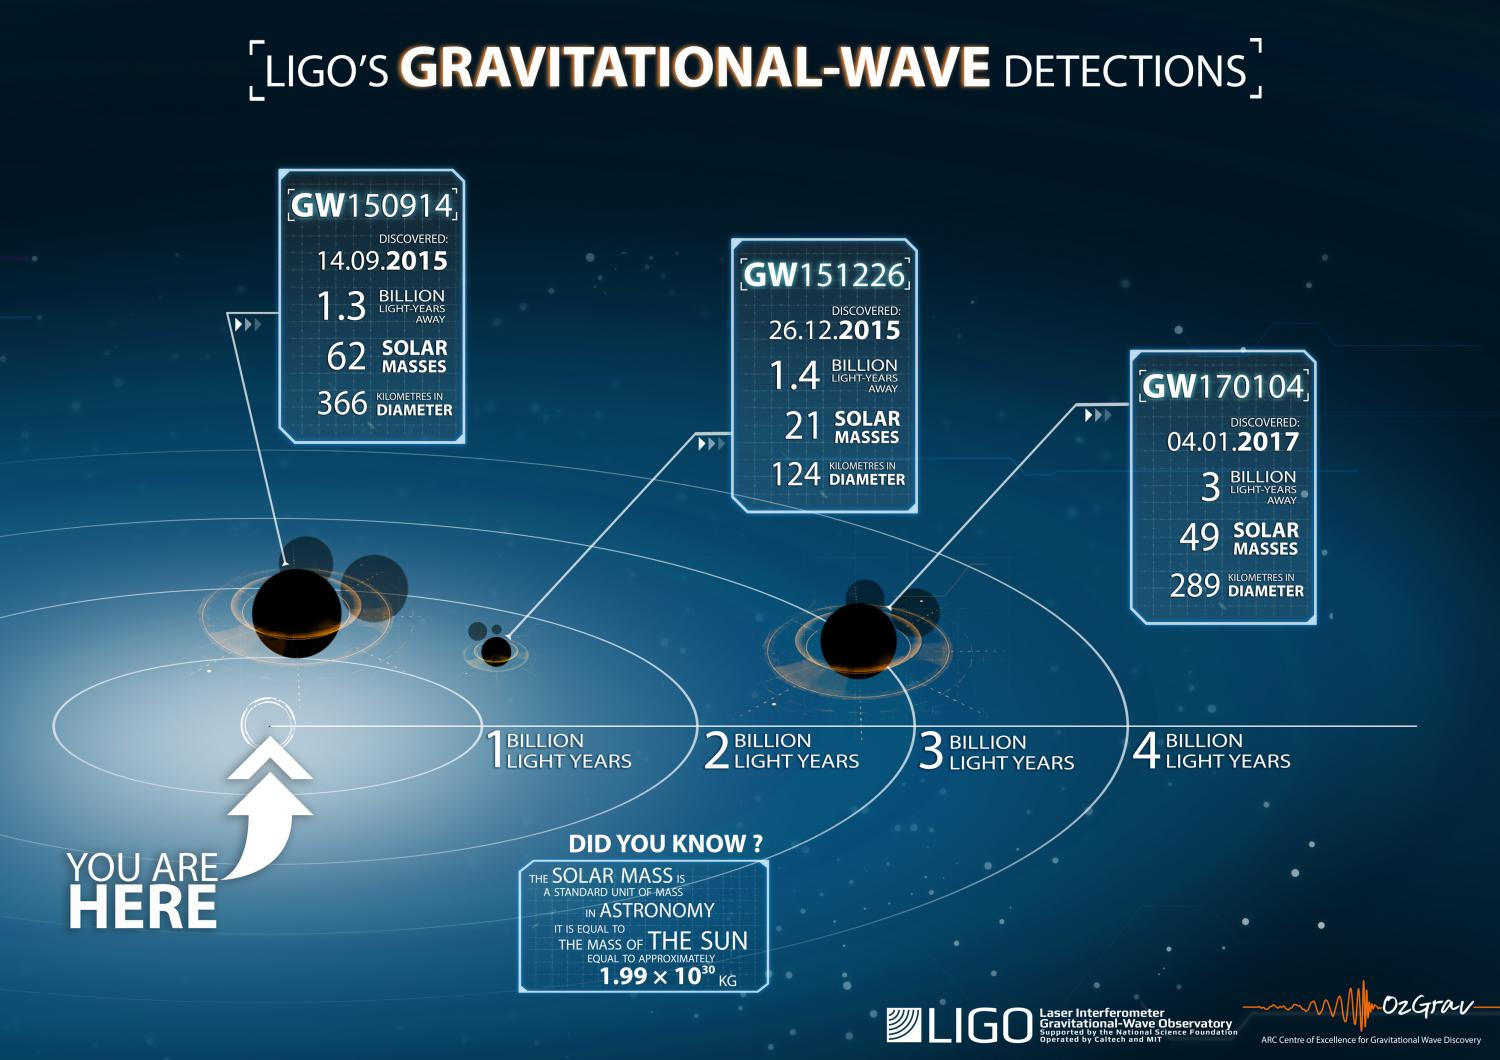 Gravitational Waves with Stuart,Cat & Guests (Making Science Cool Again) on Edge Radio 99.3FM